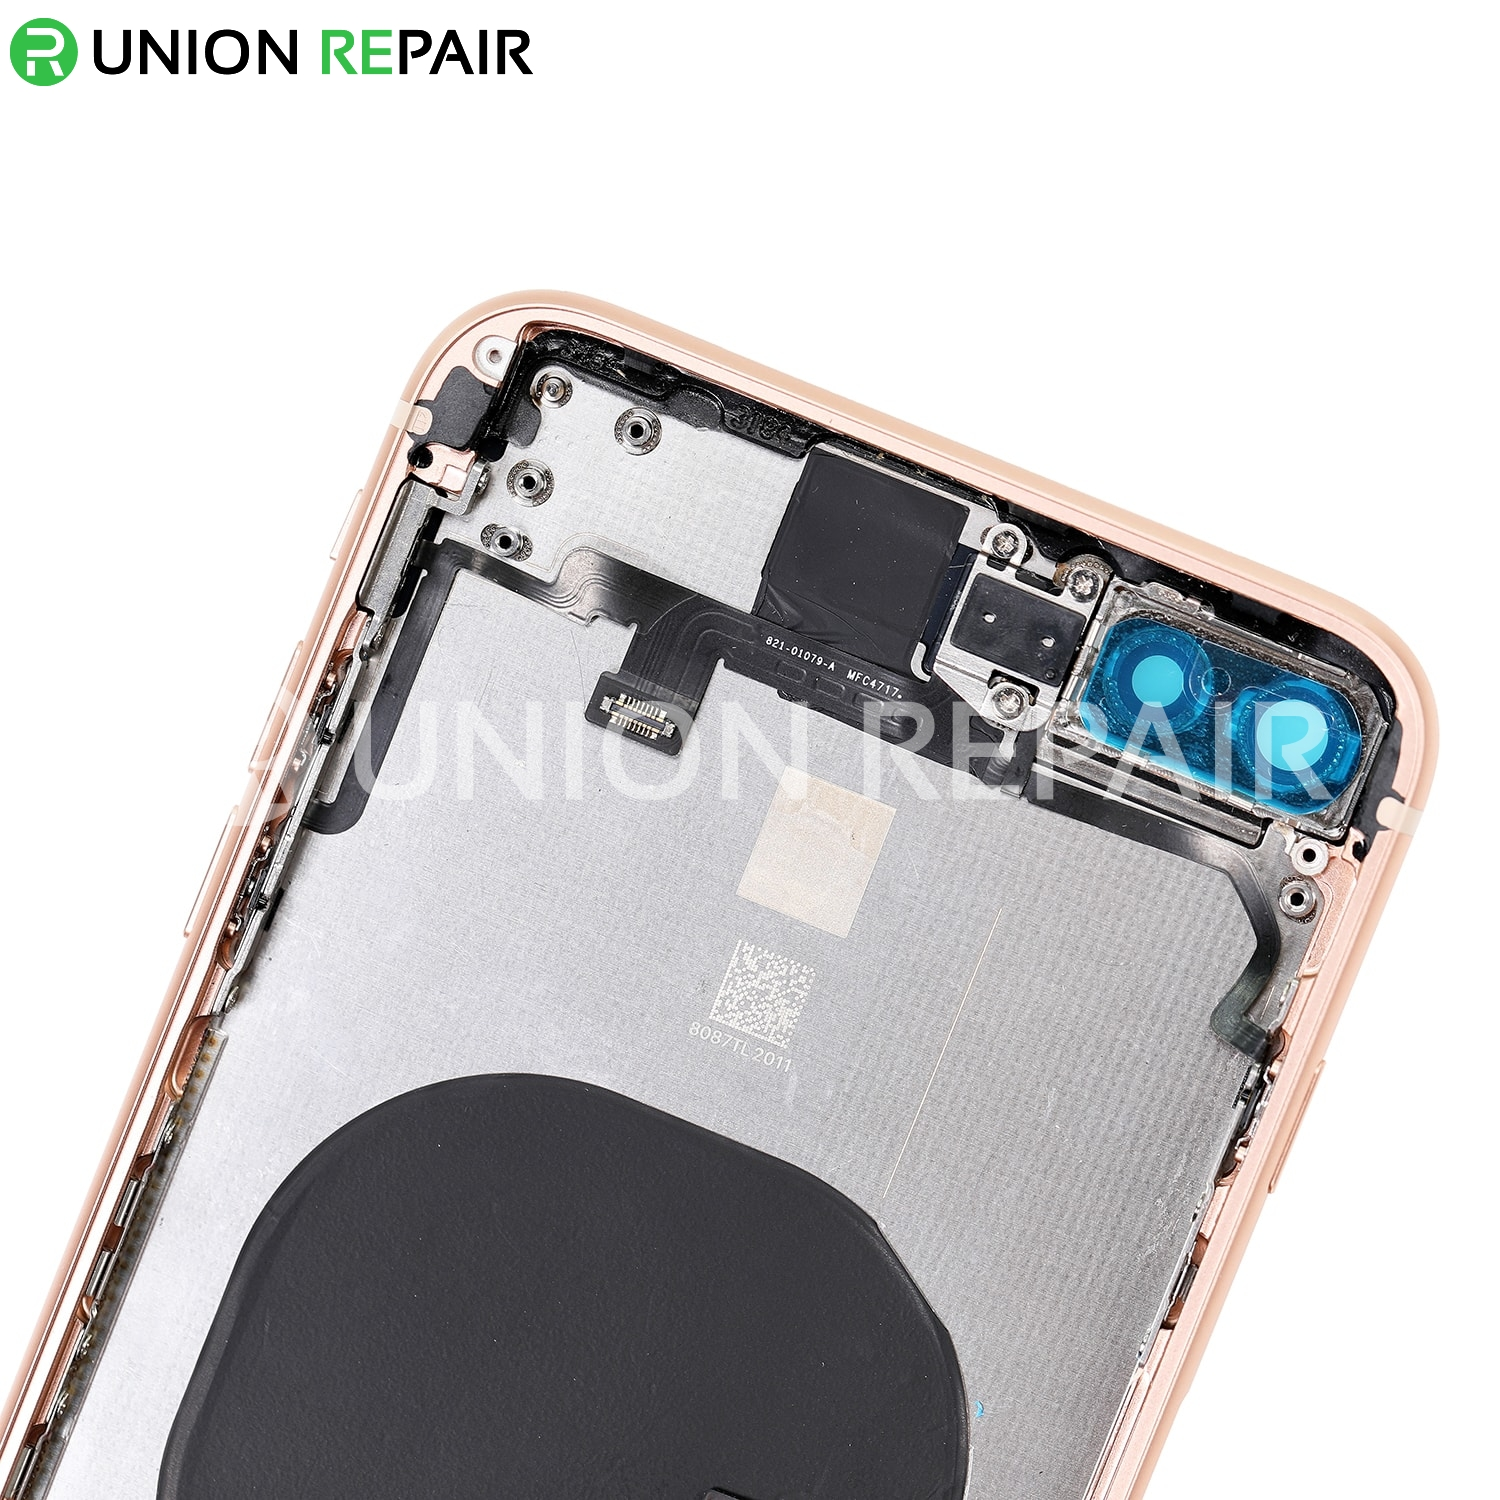 Replacement for iPhone 8 Plus Back Cover Full Assembly - Gold